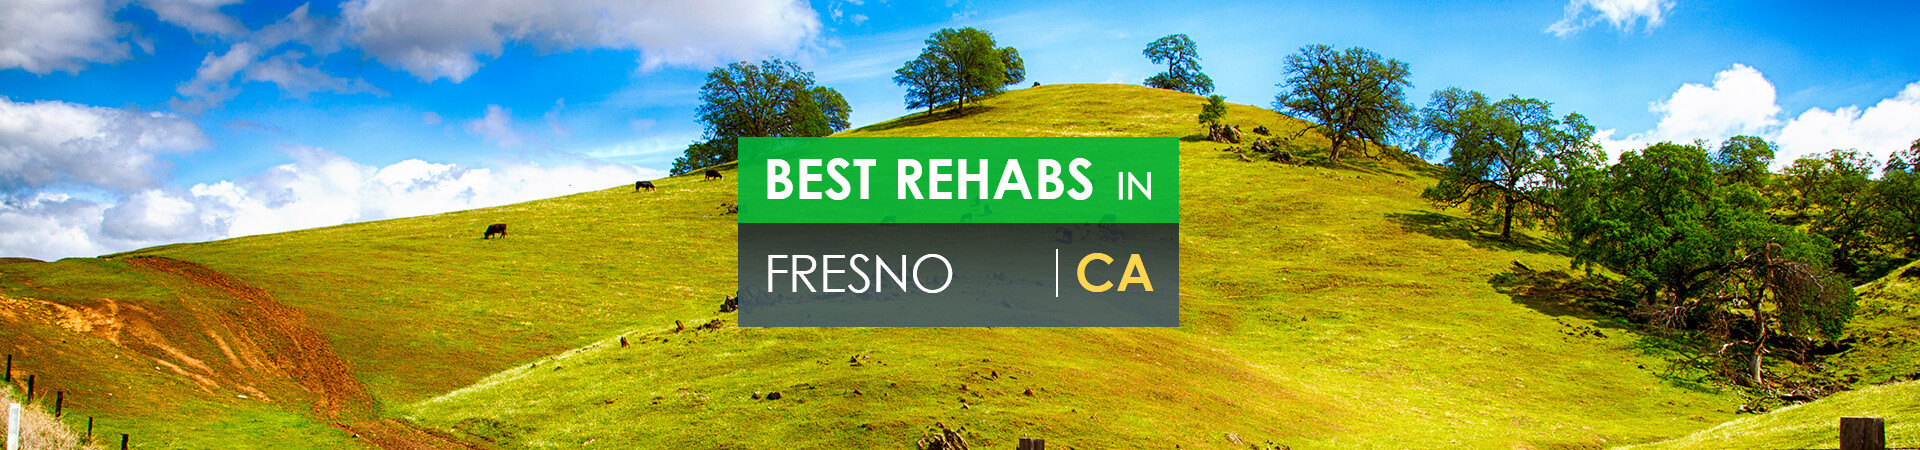 Best rehabs in Fresno, CA